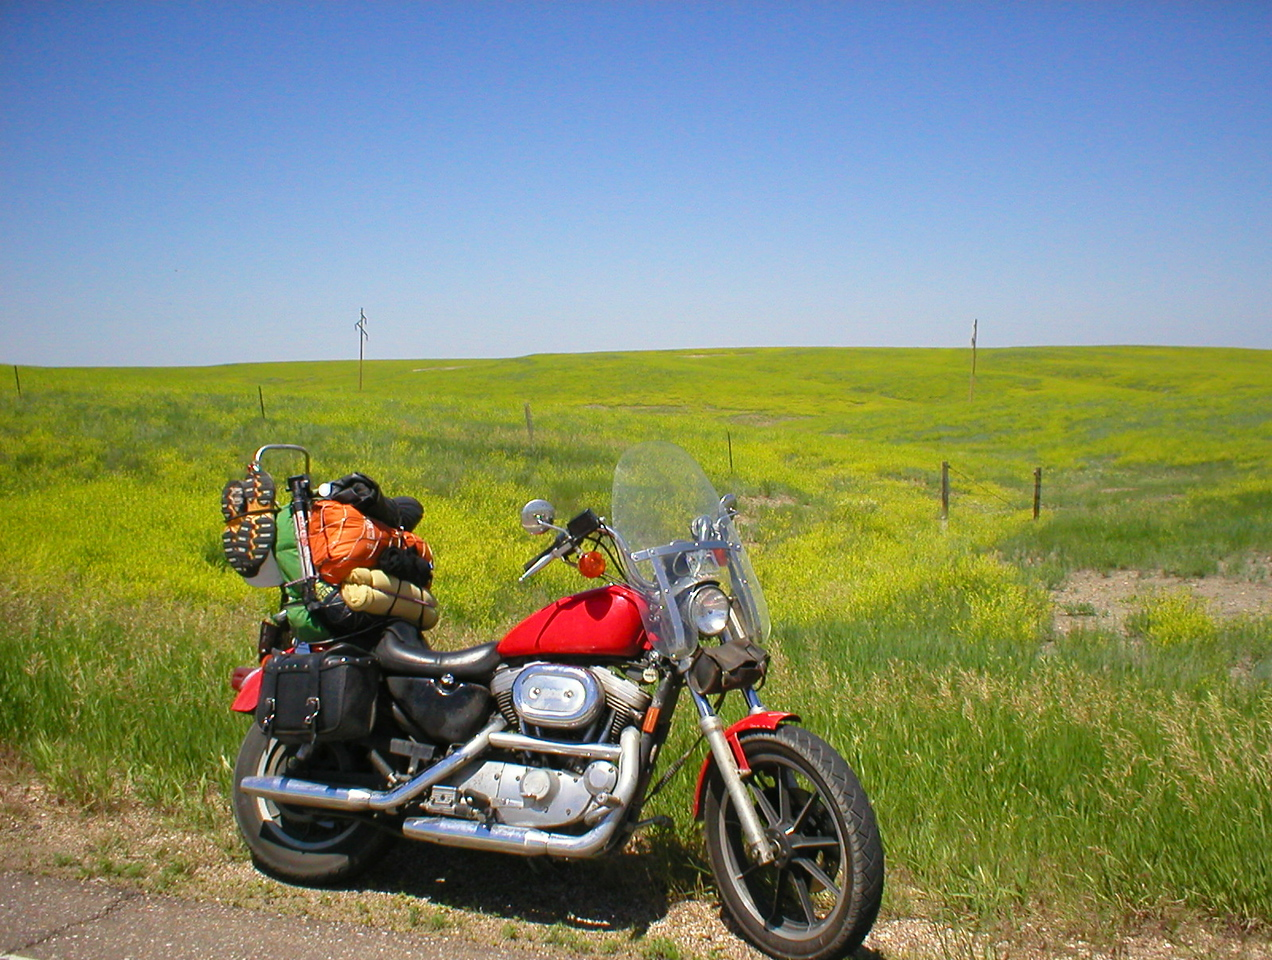 The rest of the ride was uneventful. I do the back roads through South Dakota, Minnesota to home in northern Wisconsin. <br /> <br /> The fields in SD were rich with color.